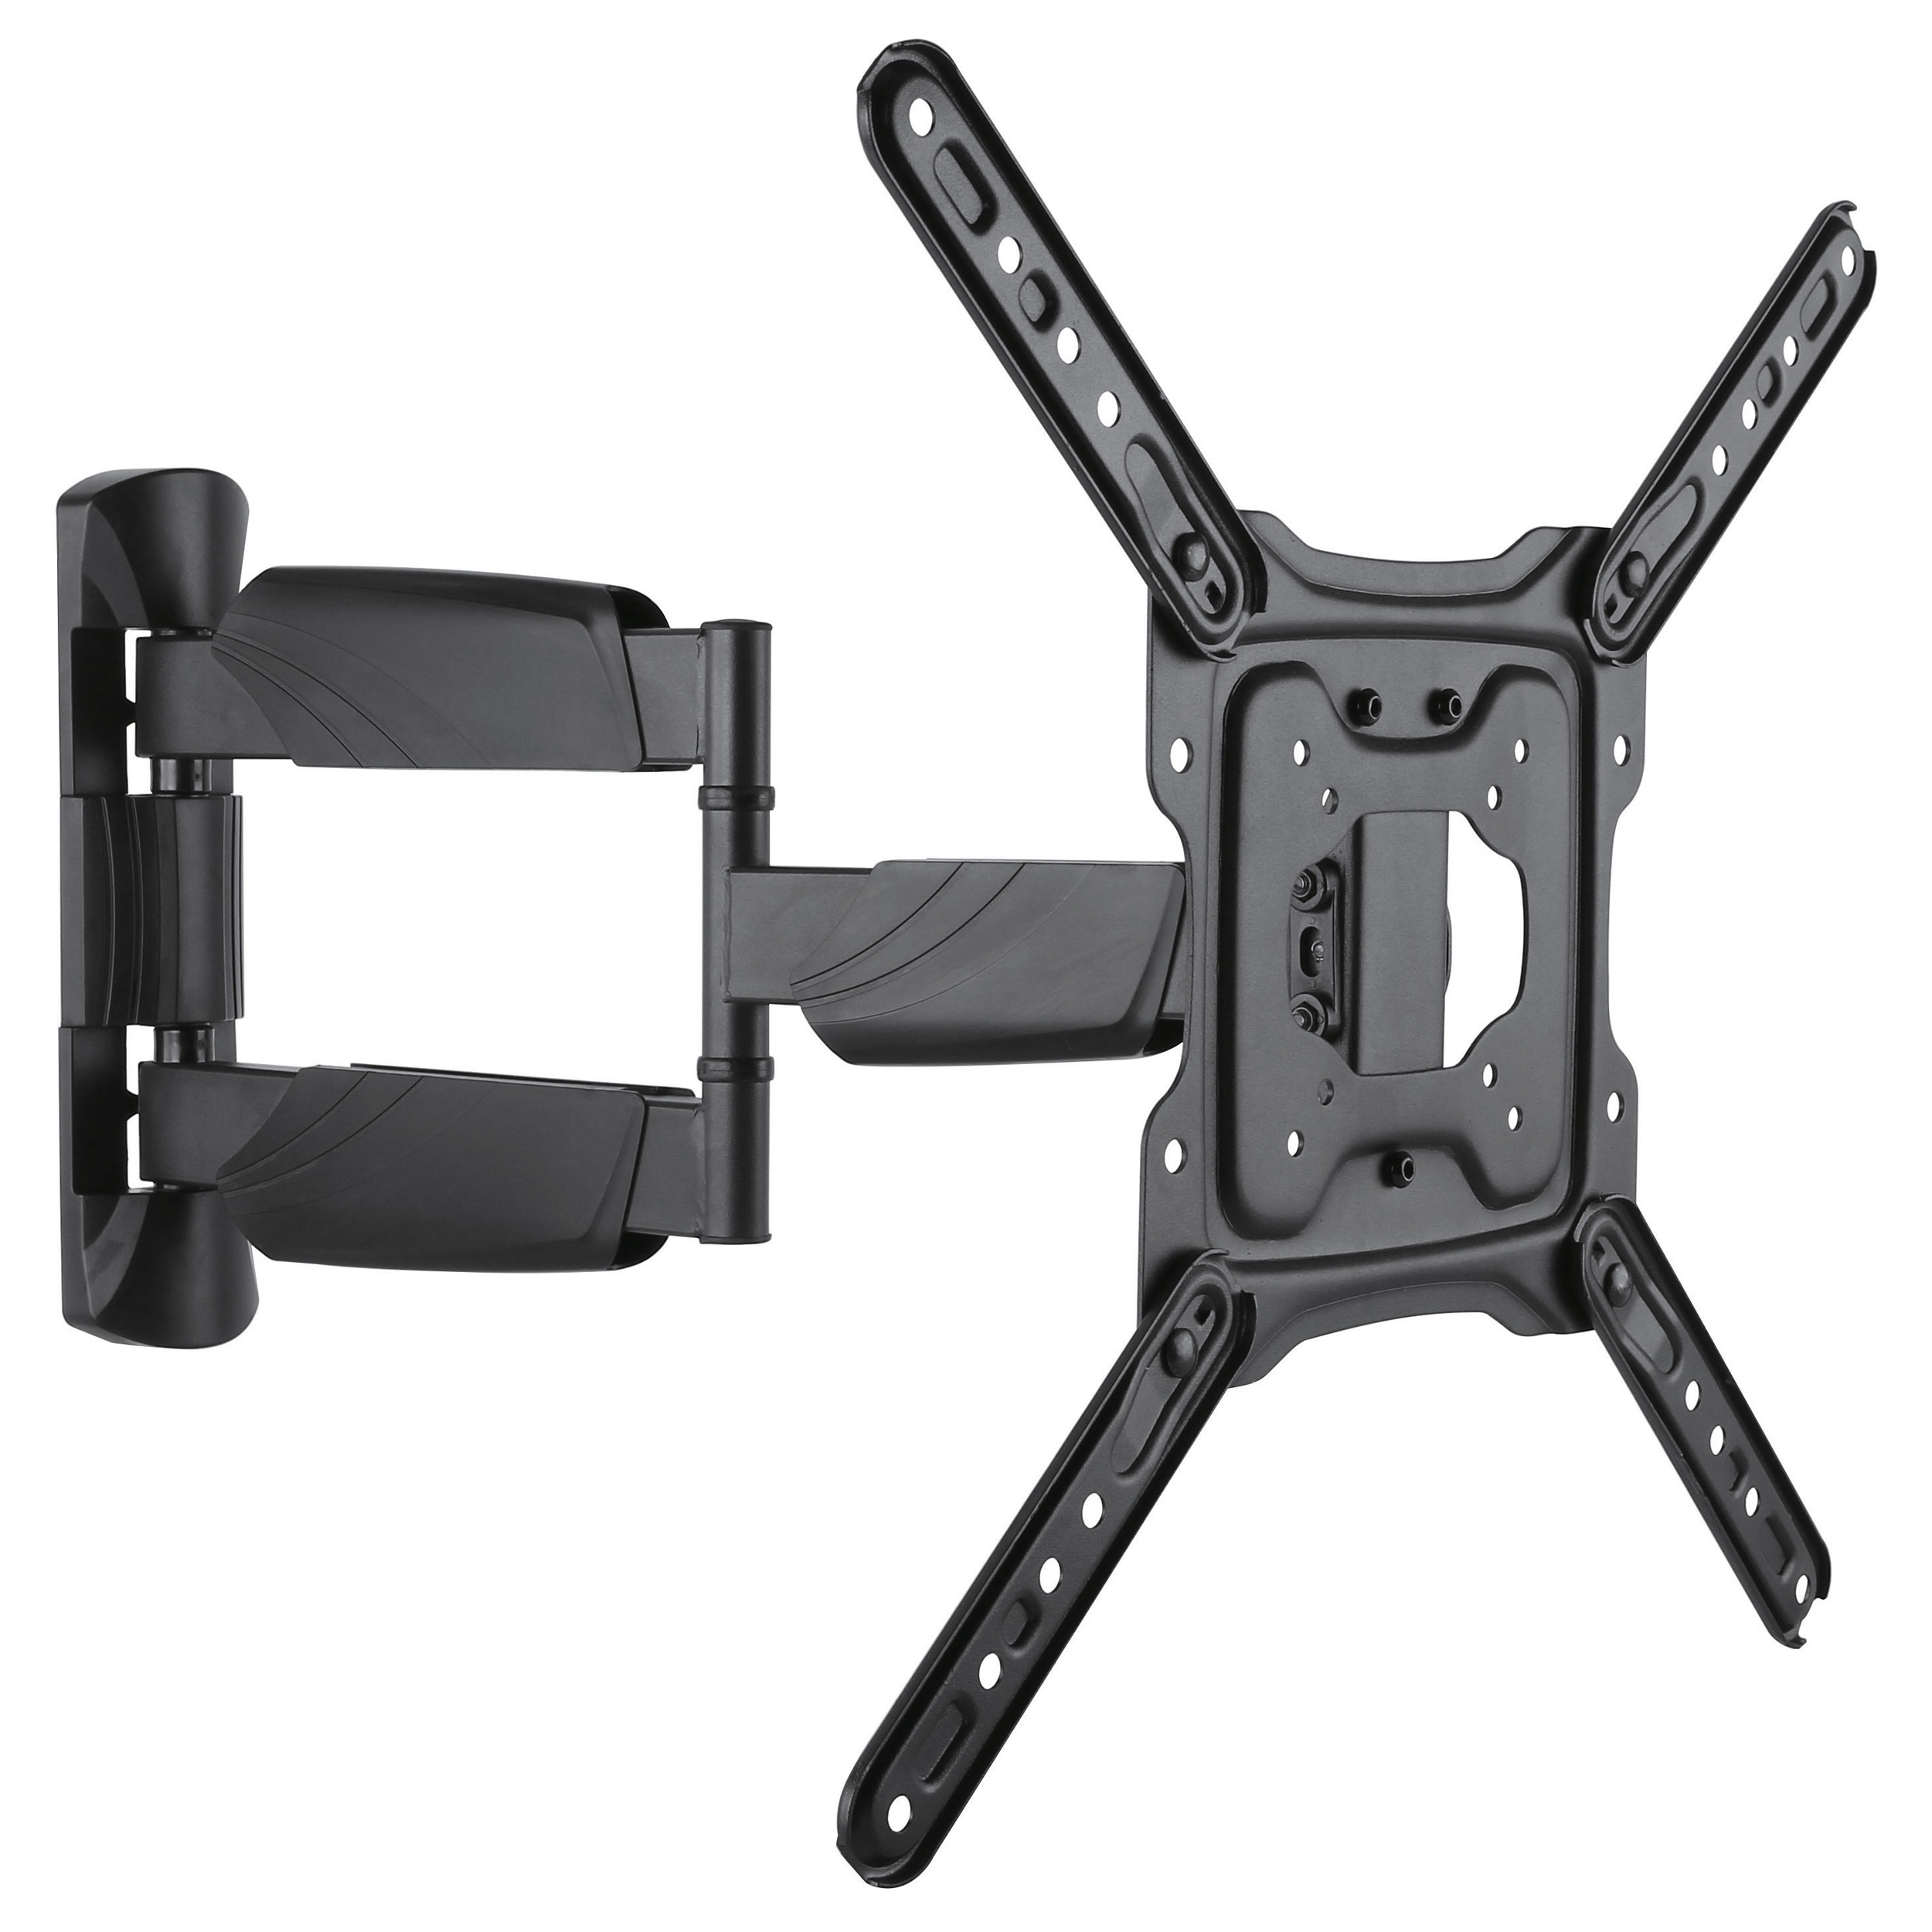 "Ergotech Wall Mount for TV - 55"" Screen Support - 77 lb Load (Refurbished)"